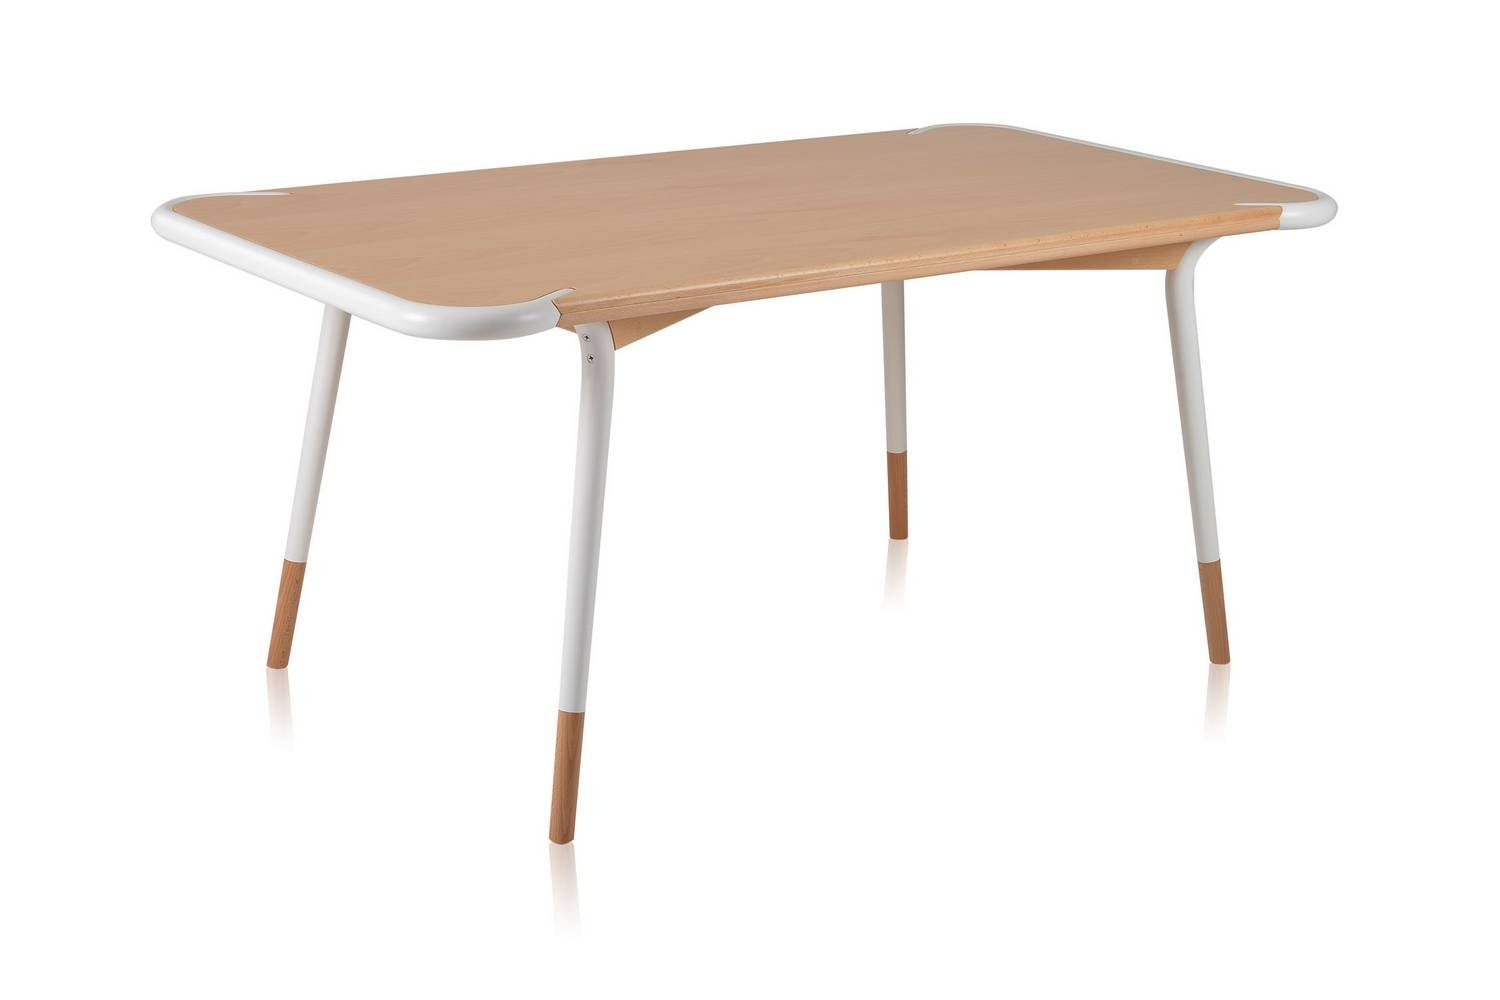 Quaranta Table by Francesco Mansueto for Wiener GTV Design